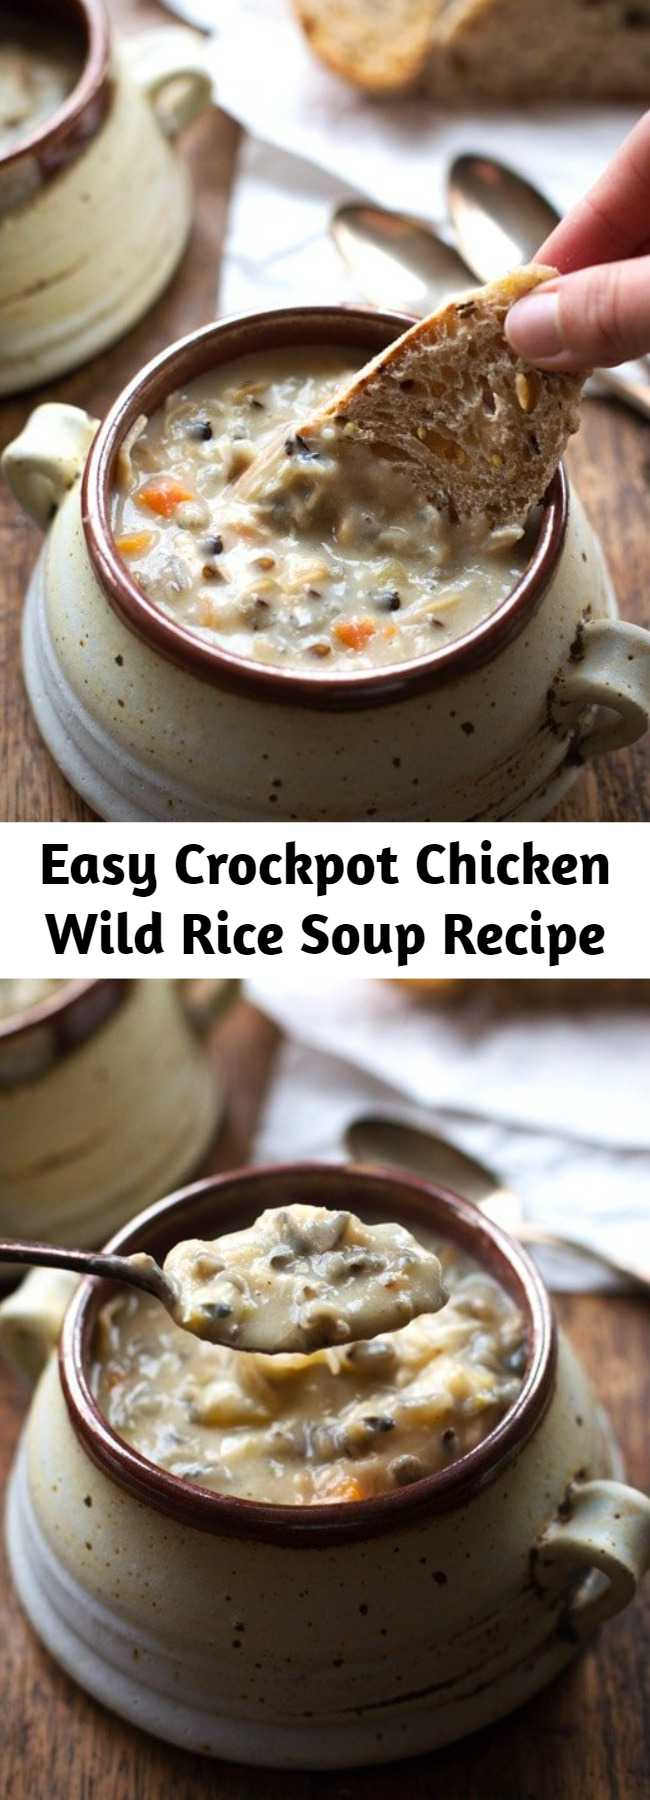 Easy Crockpot Chicken Wild Rice Soup Recipe - This Crockpot Chicken Wild Rice Soup is so darn simple to make and goes perfectly with a piece of crusty bread on a cold winter night. #soup #crockpot #slowcooker #chicken #easy #dinner